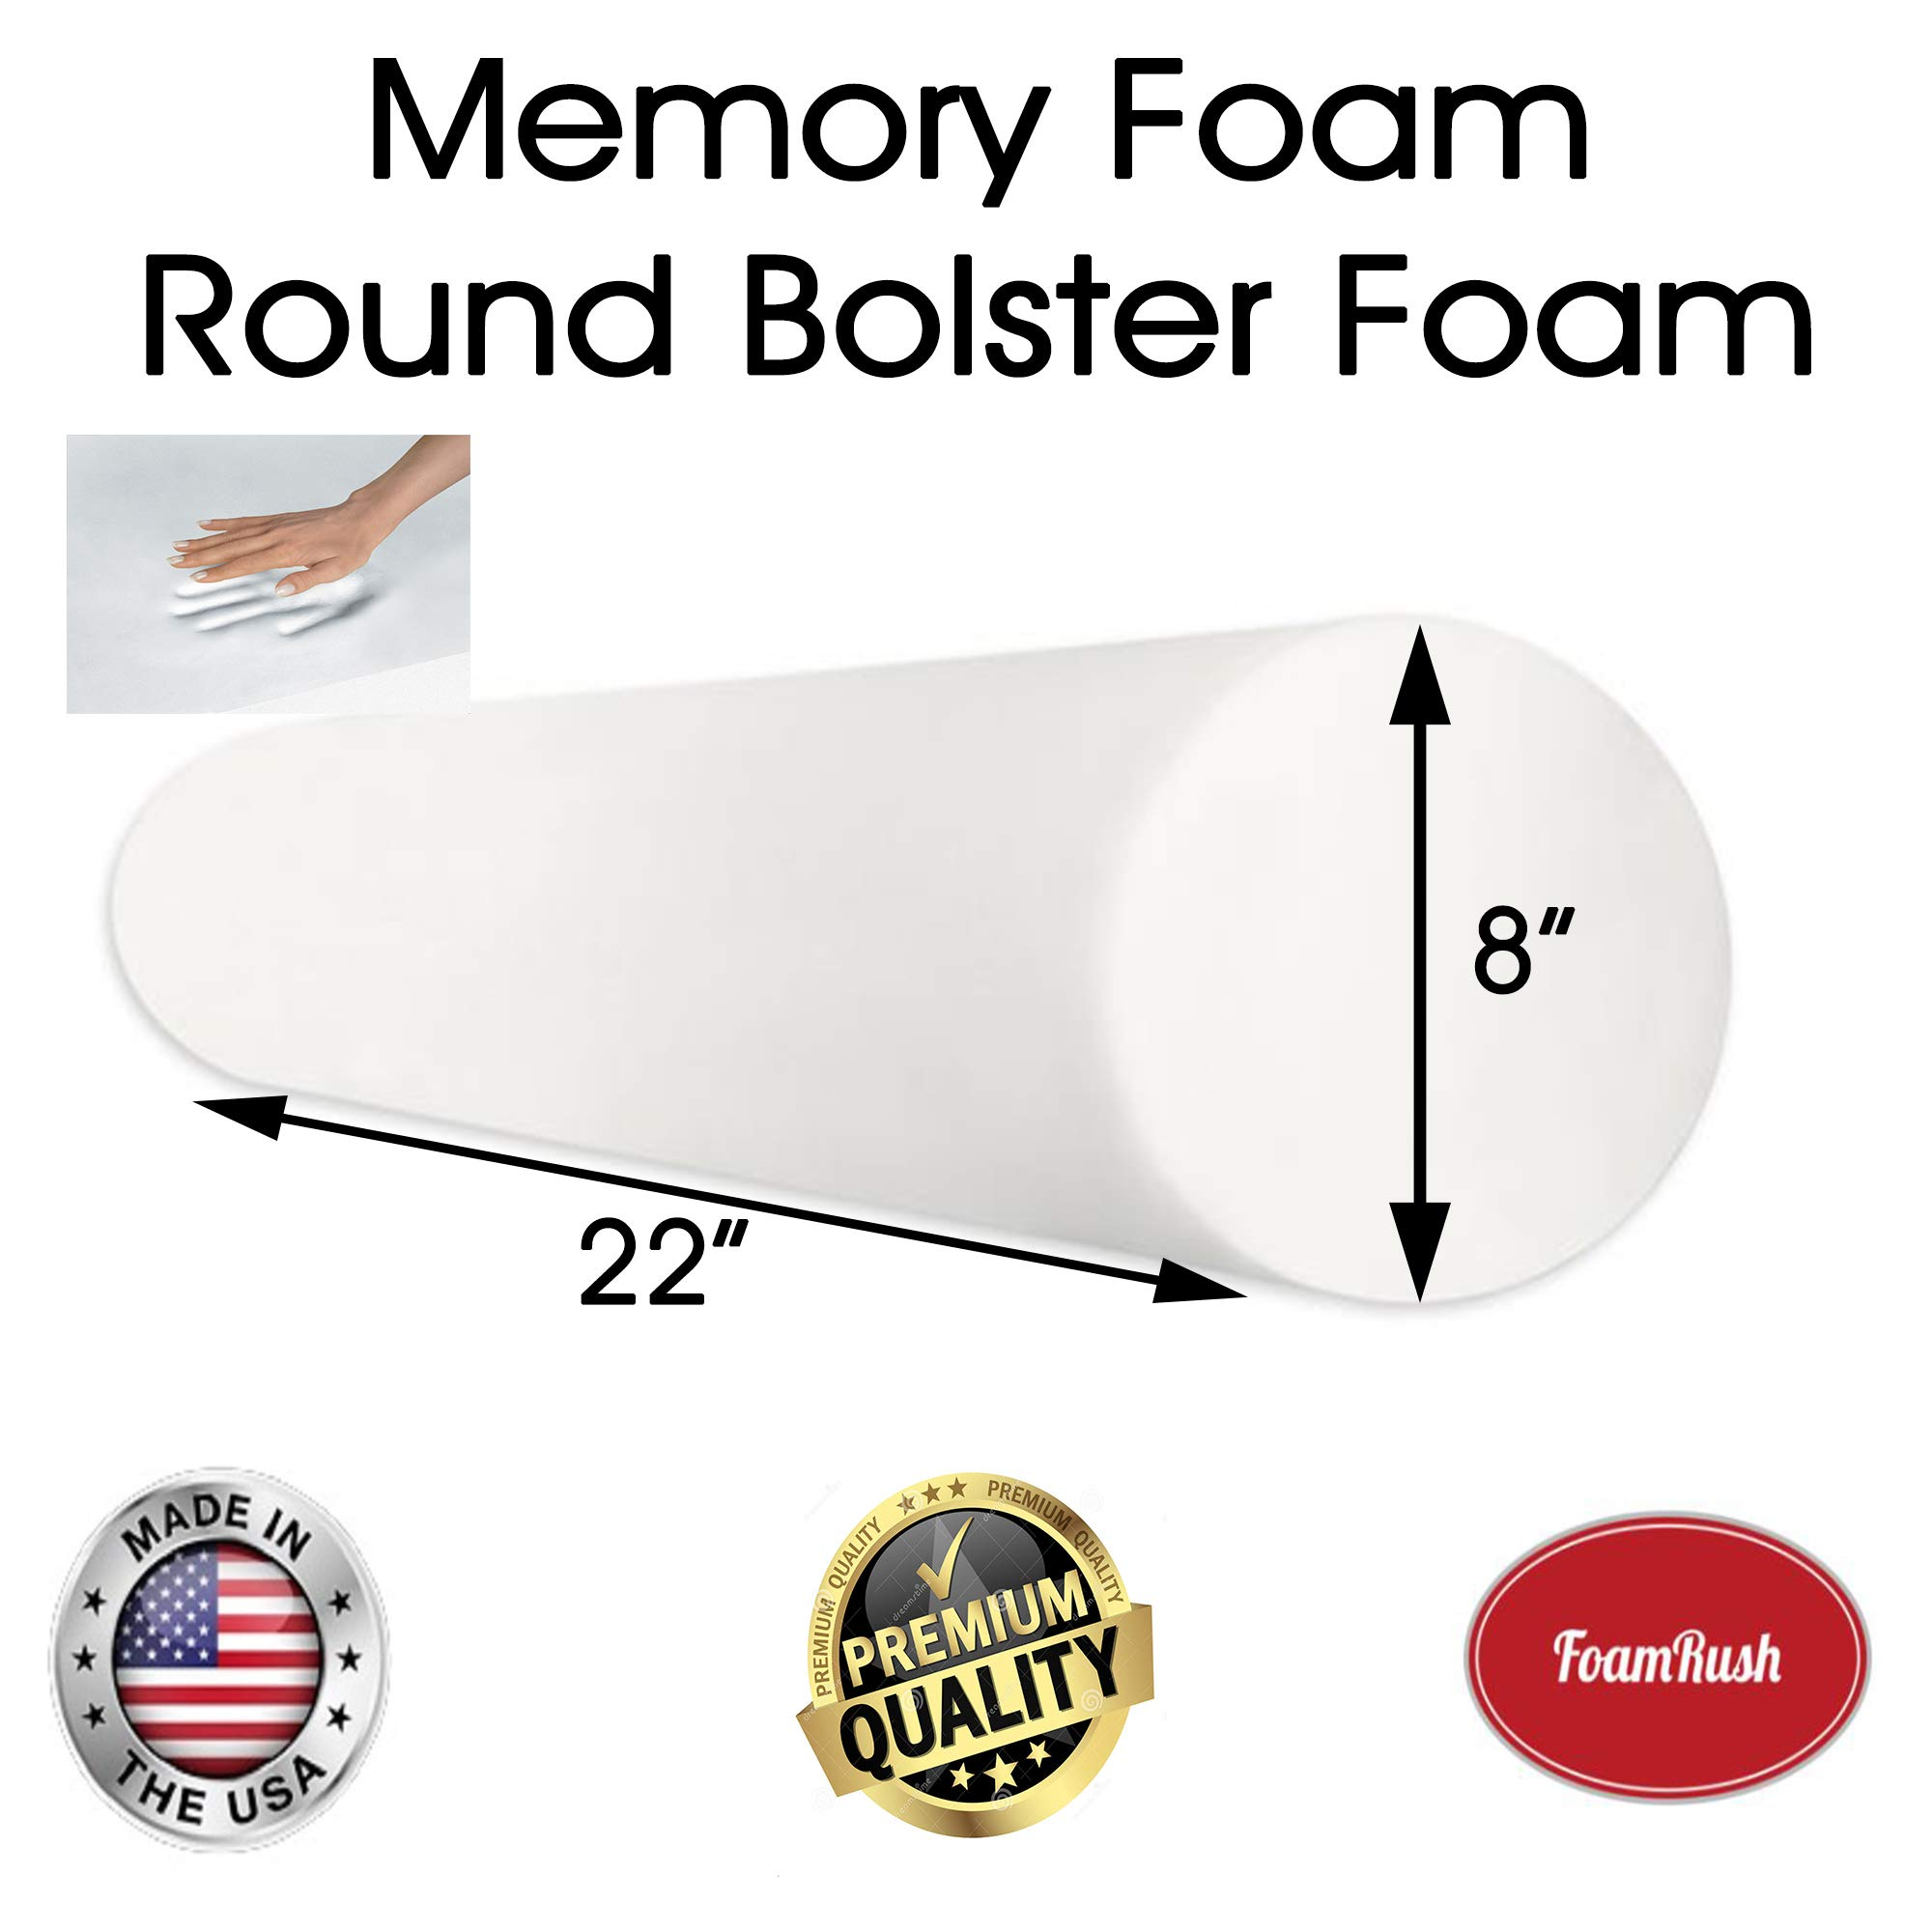 FoamRush 8'' Diameter x 22'' Long Premium Quality Round Bolster Memory Foam Roll Insert Replacement (Ideal for Home Accent Décor Positioning and General Fitness) Made in USA